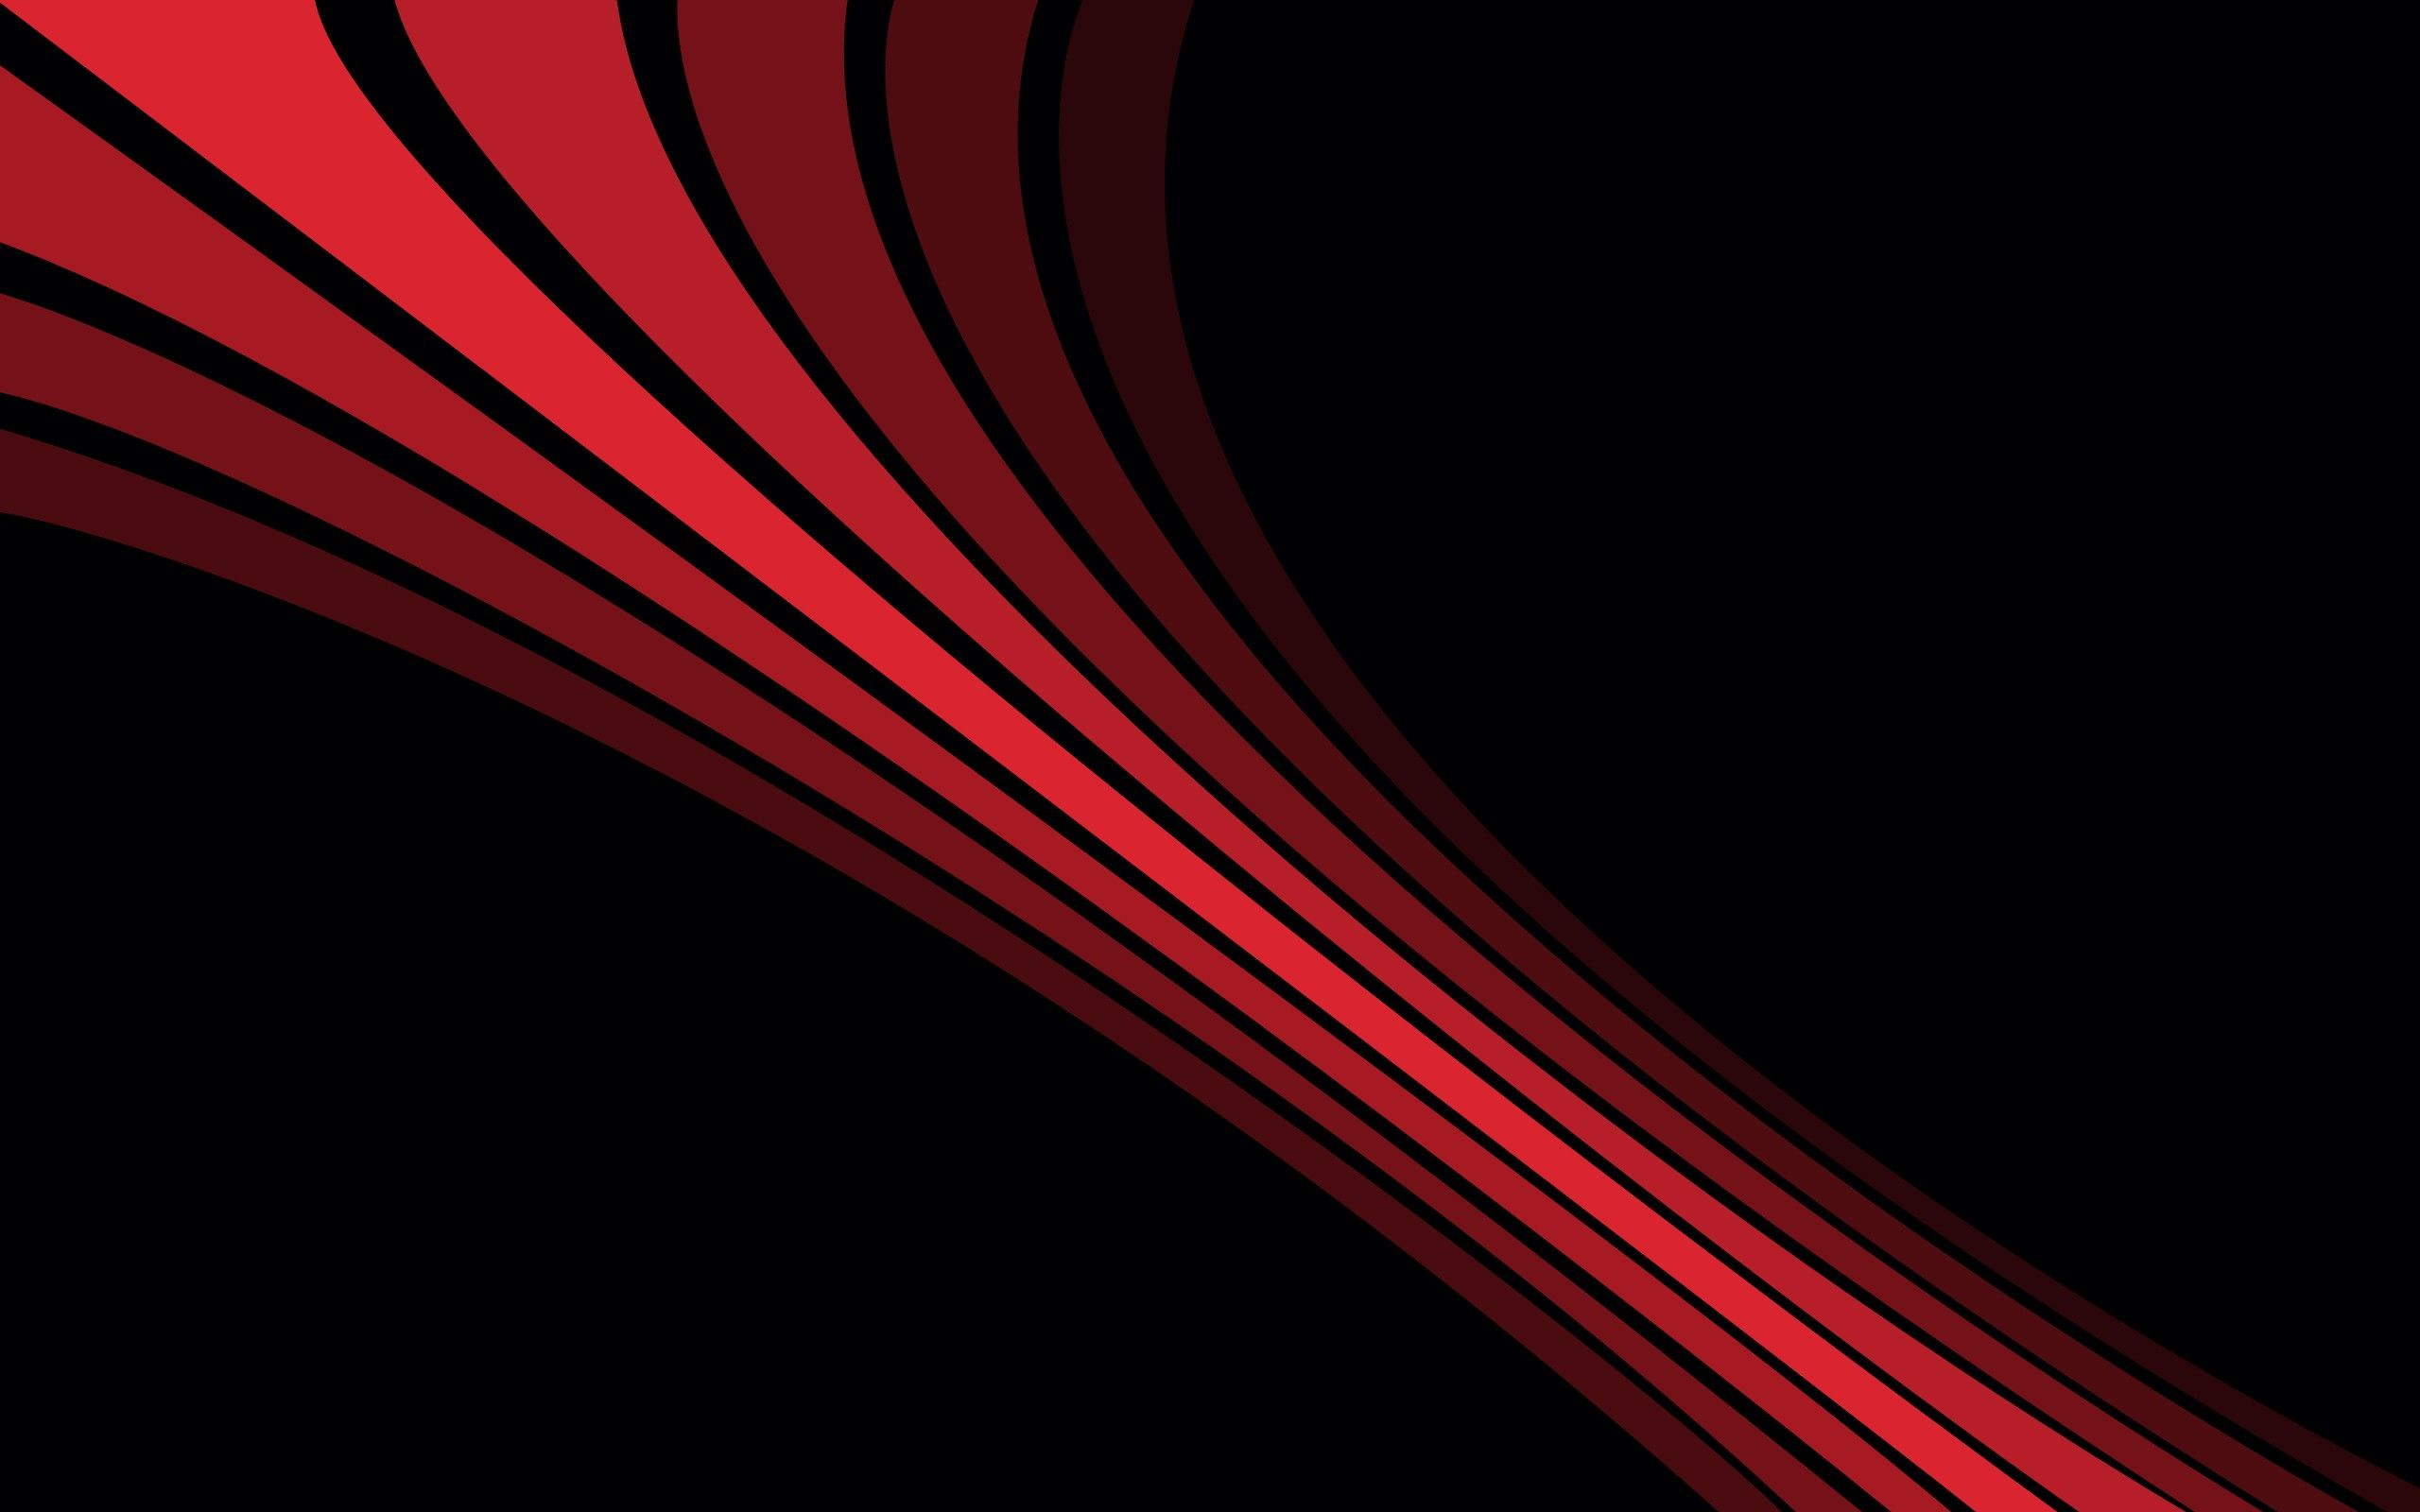 Black Background Red Lines Simple Background Abstract